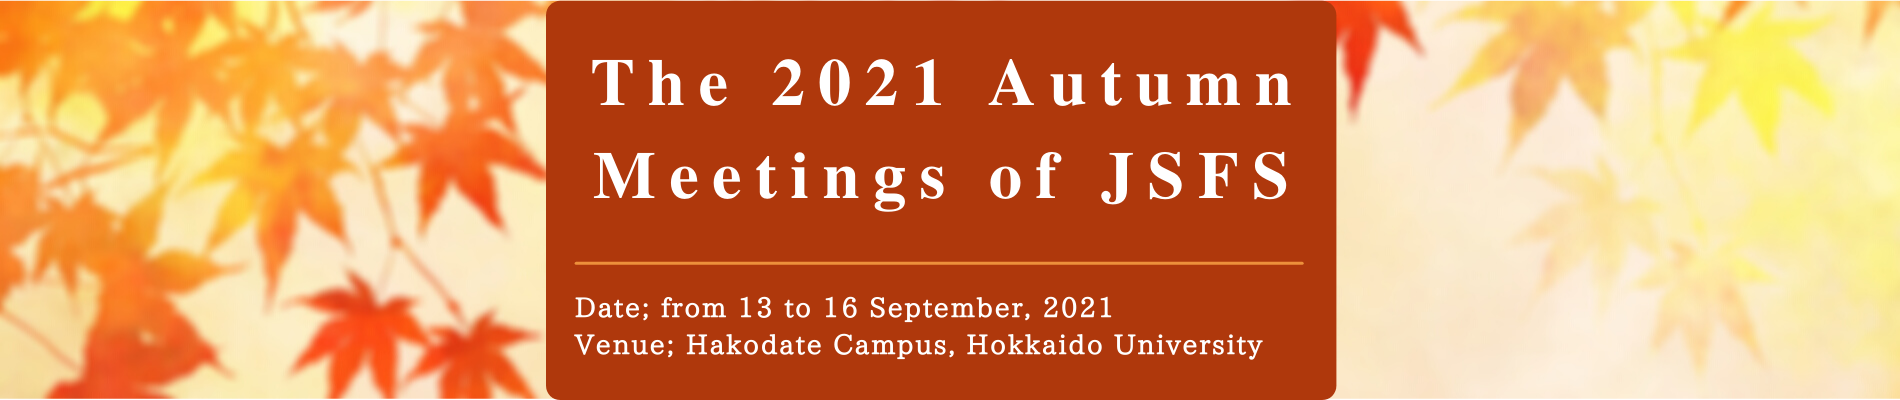 The 2021 Autumn Meetings of JSFS